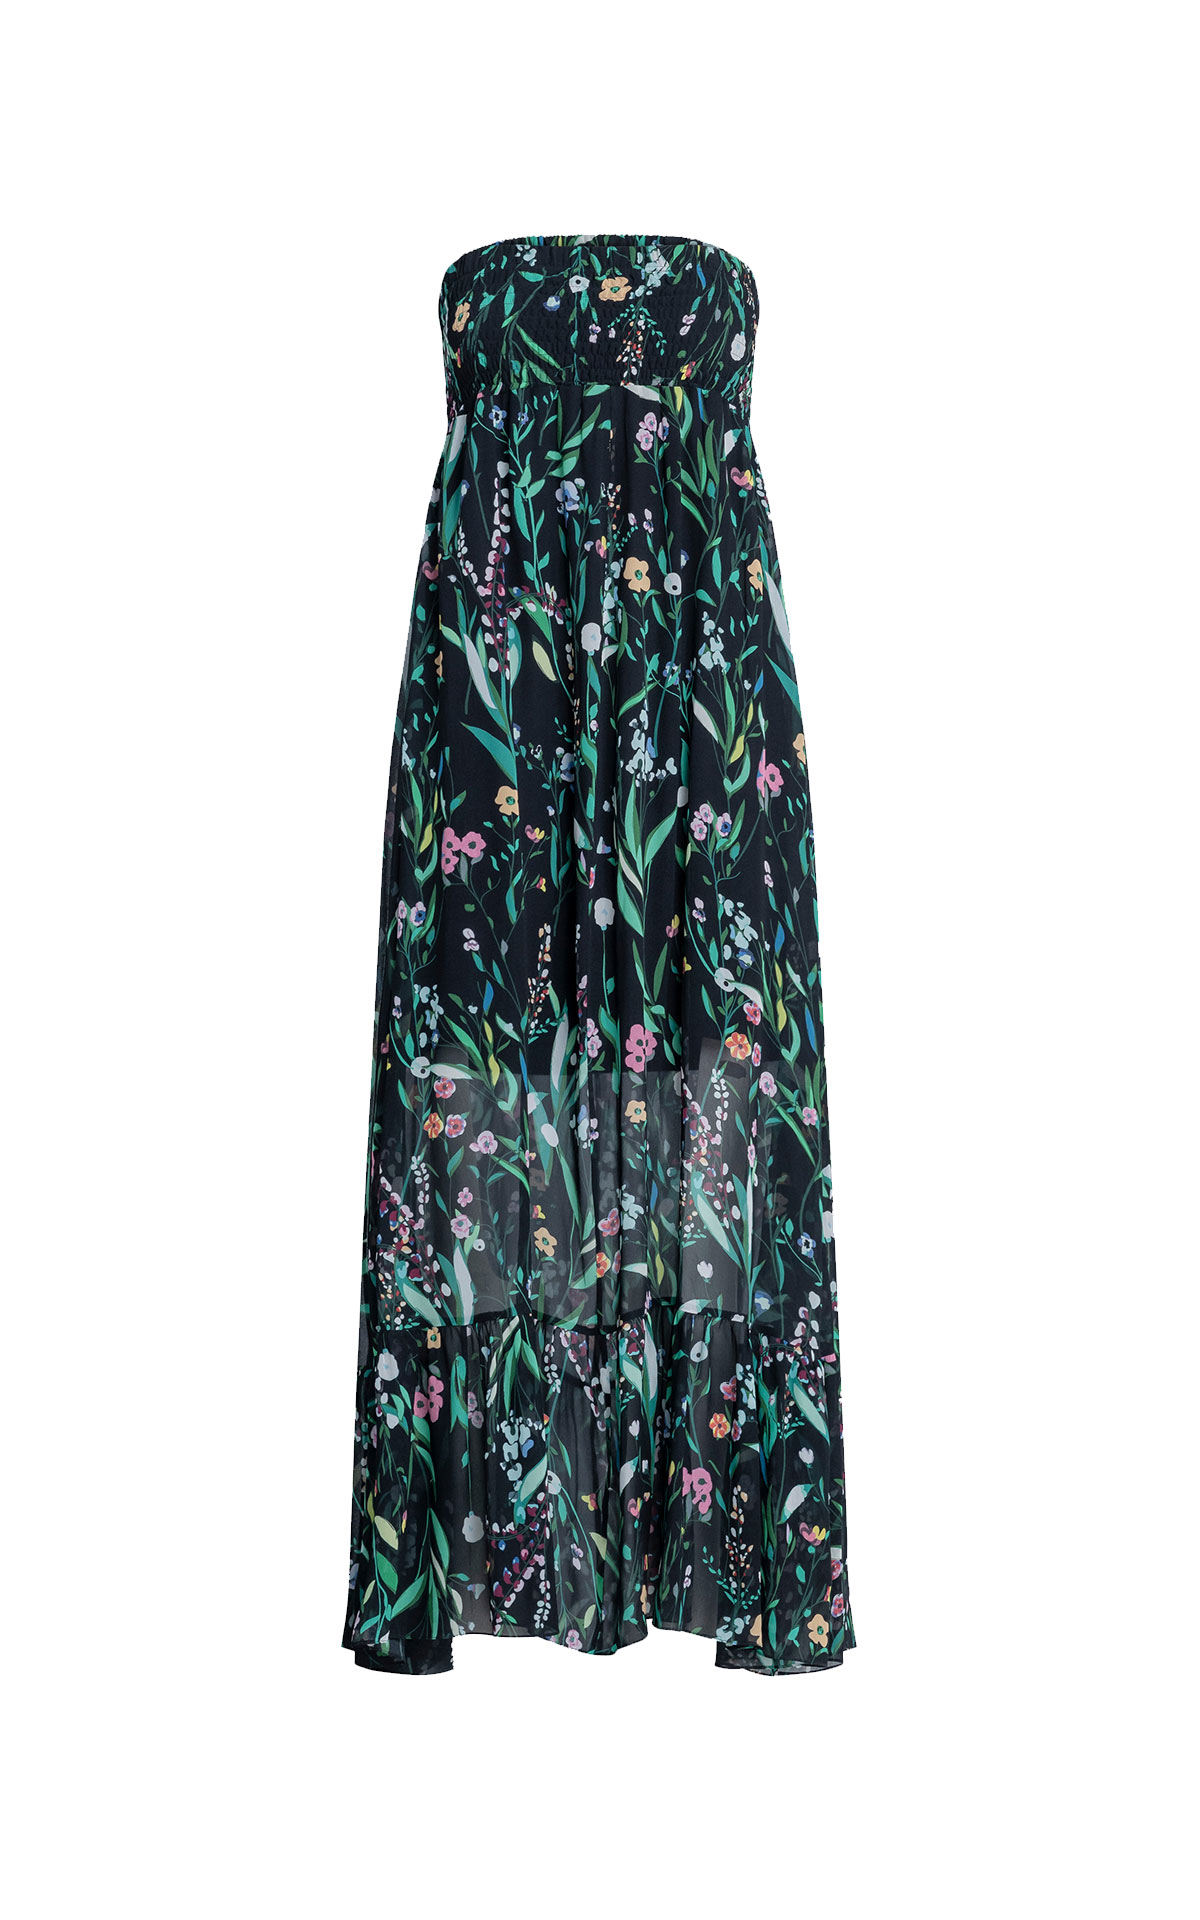 Anne Fontaine Uniflore maxi dress from Bicester Village